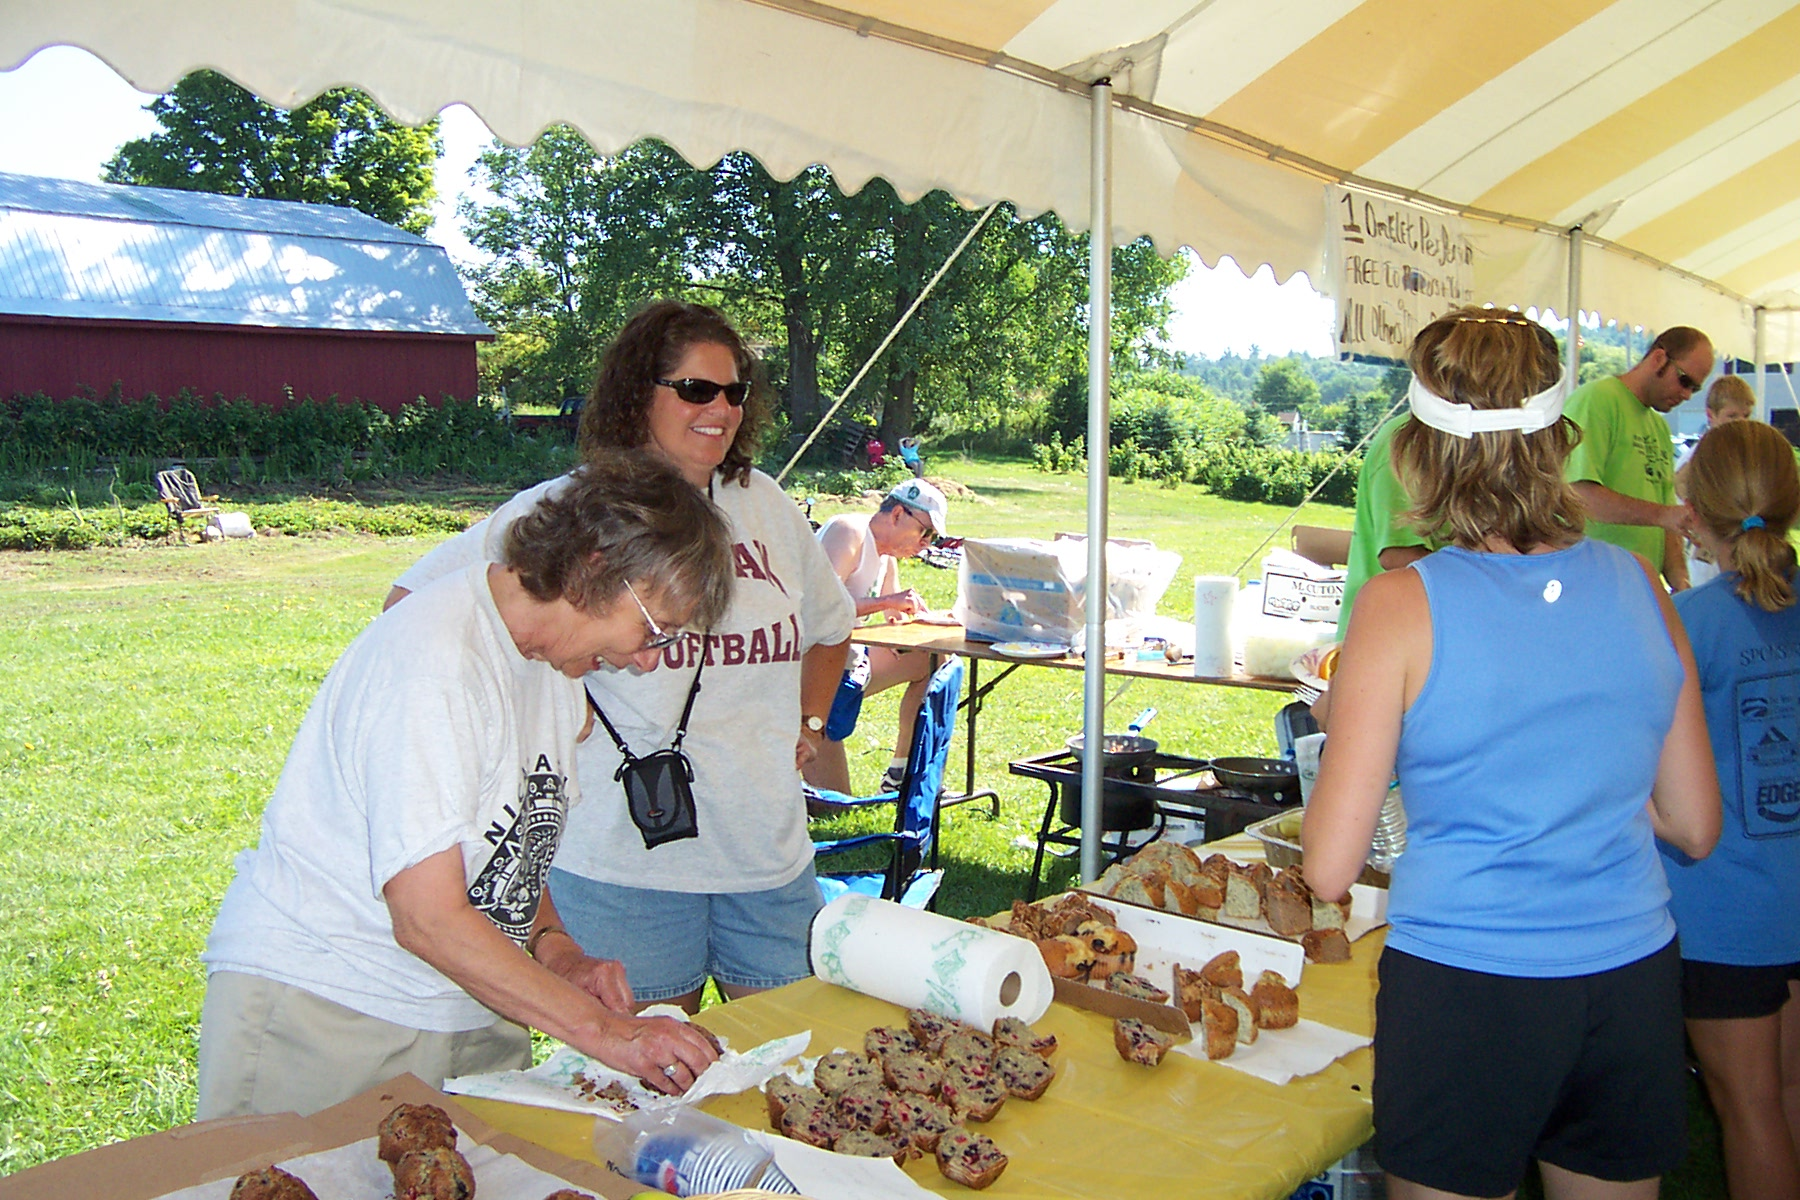 Rev. Elizabeth and Helen Hartman at the Muffin Table - Egg Run 2007 004